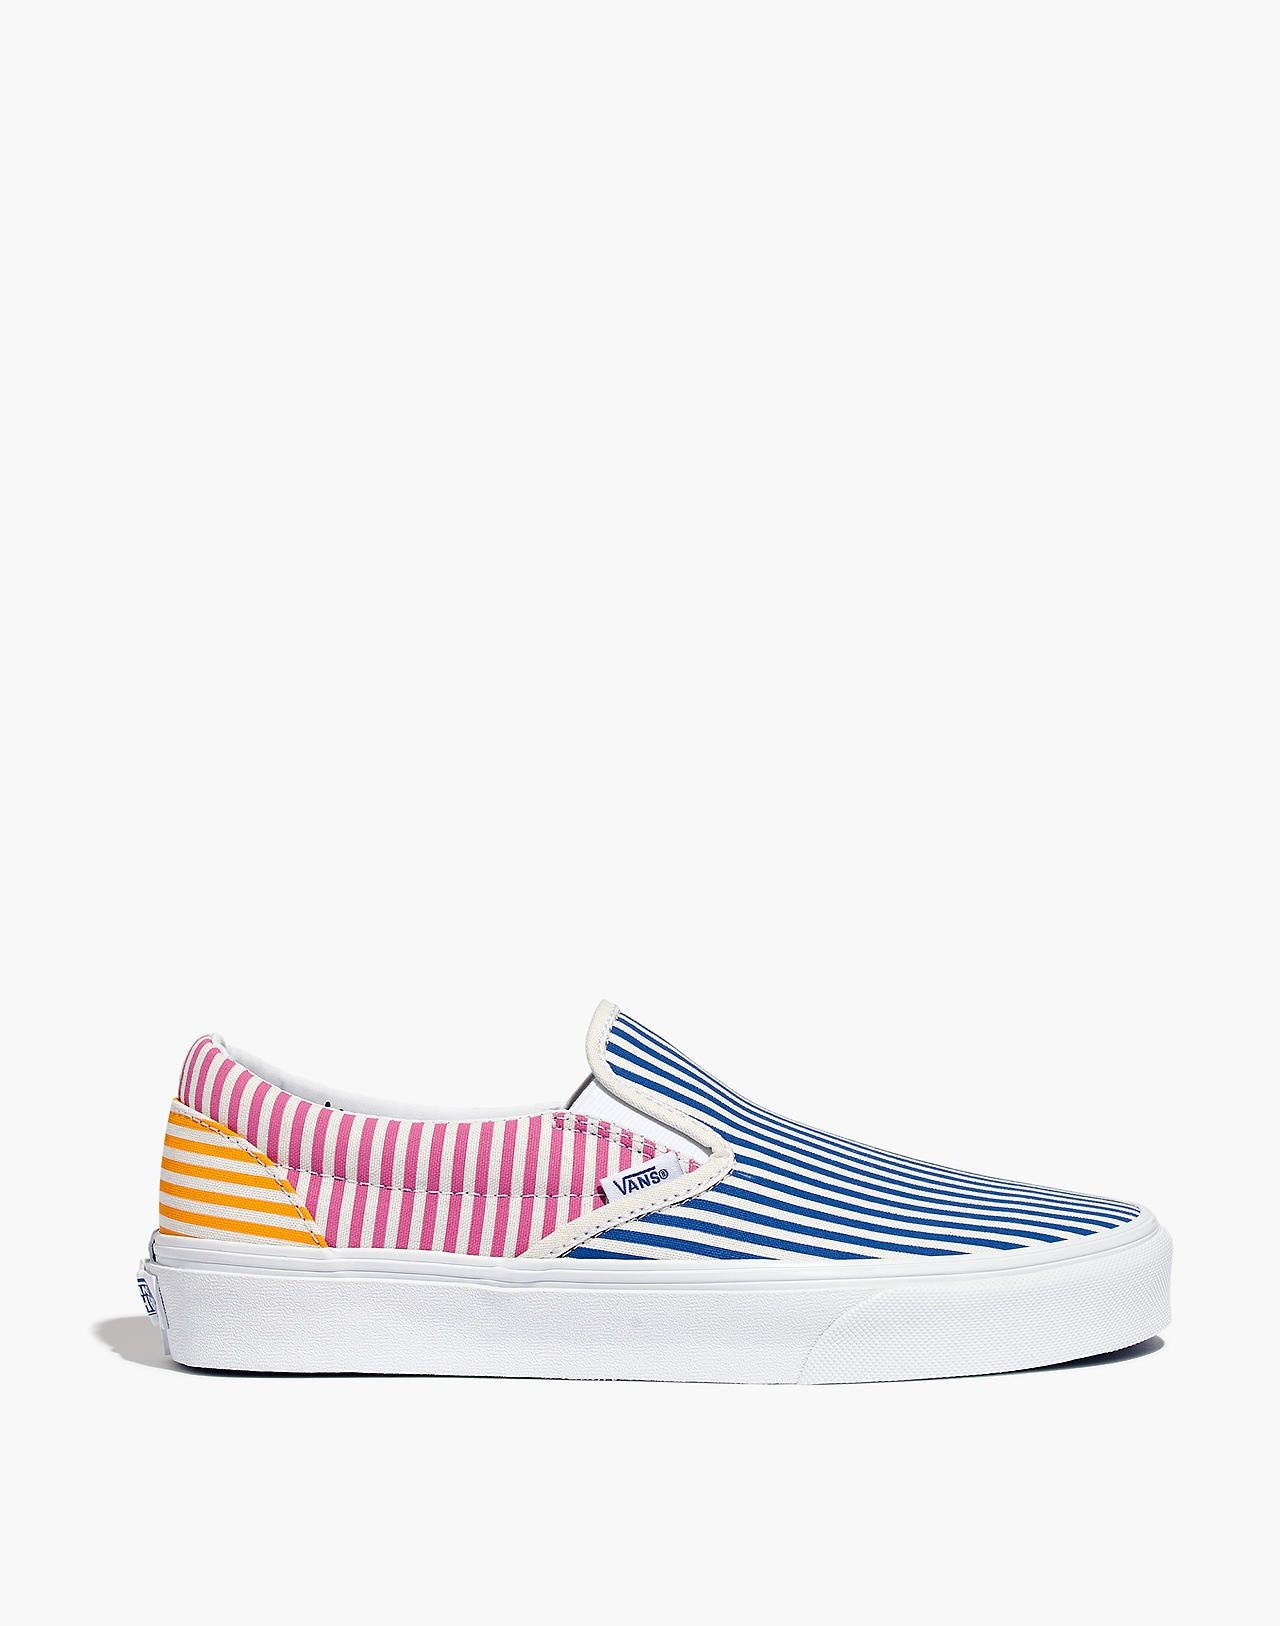 63b099a351c Vans® Unisex Classic Slip-On Sneakers in Mix Stripes in 2019